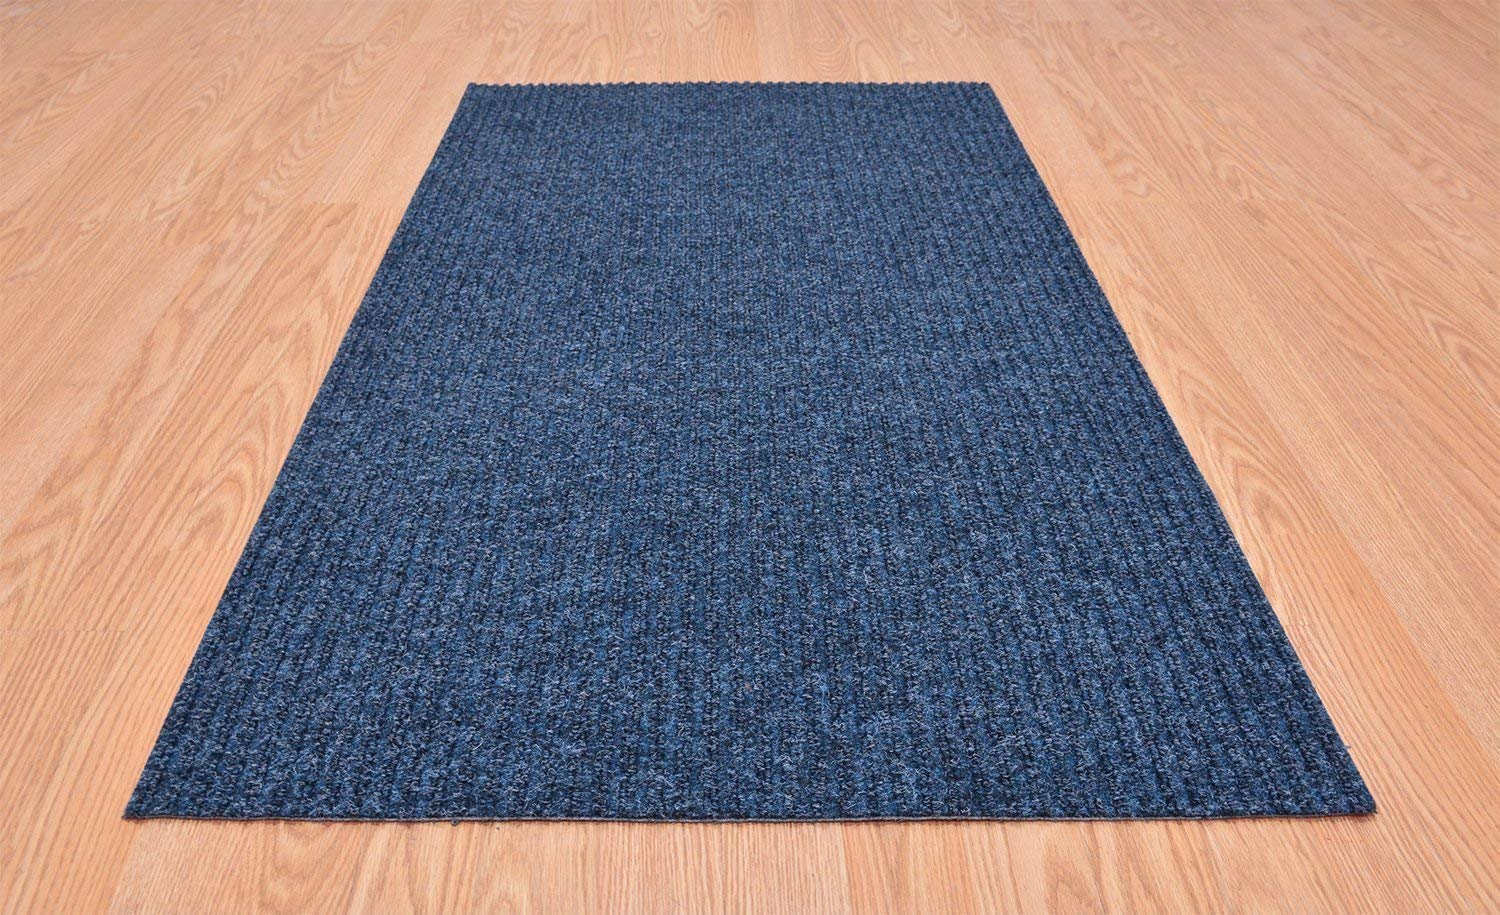 RugStylesOnline Tough Collection Custom Size Roll Runner Blue 27 in or 36 in Wide x Your Length Choice Slip Resistant Rubber Back Area Rugs and Runners (Blue, 27 in x 10 ft)